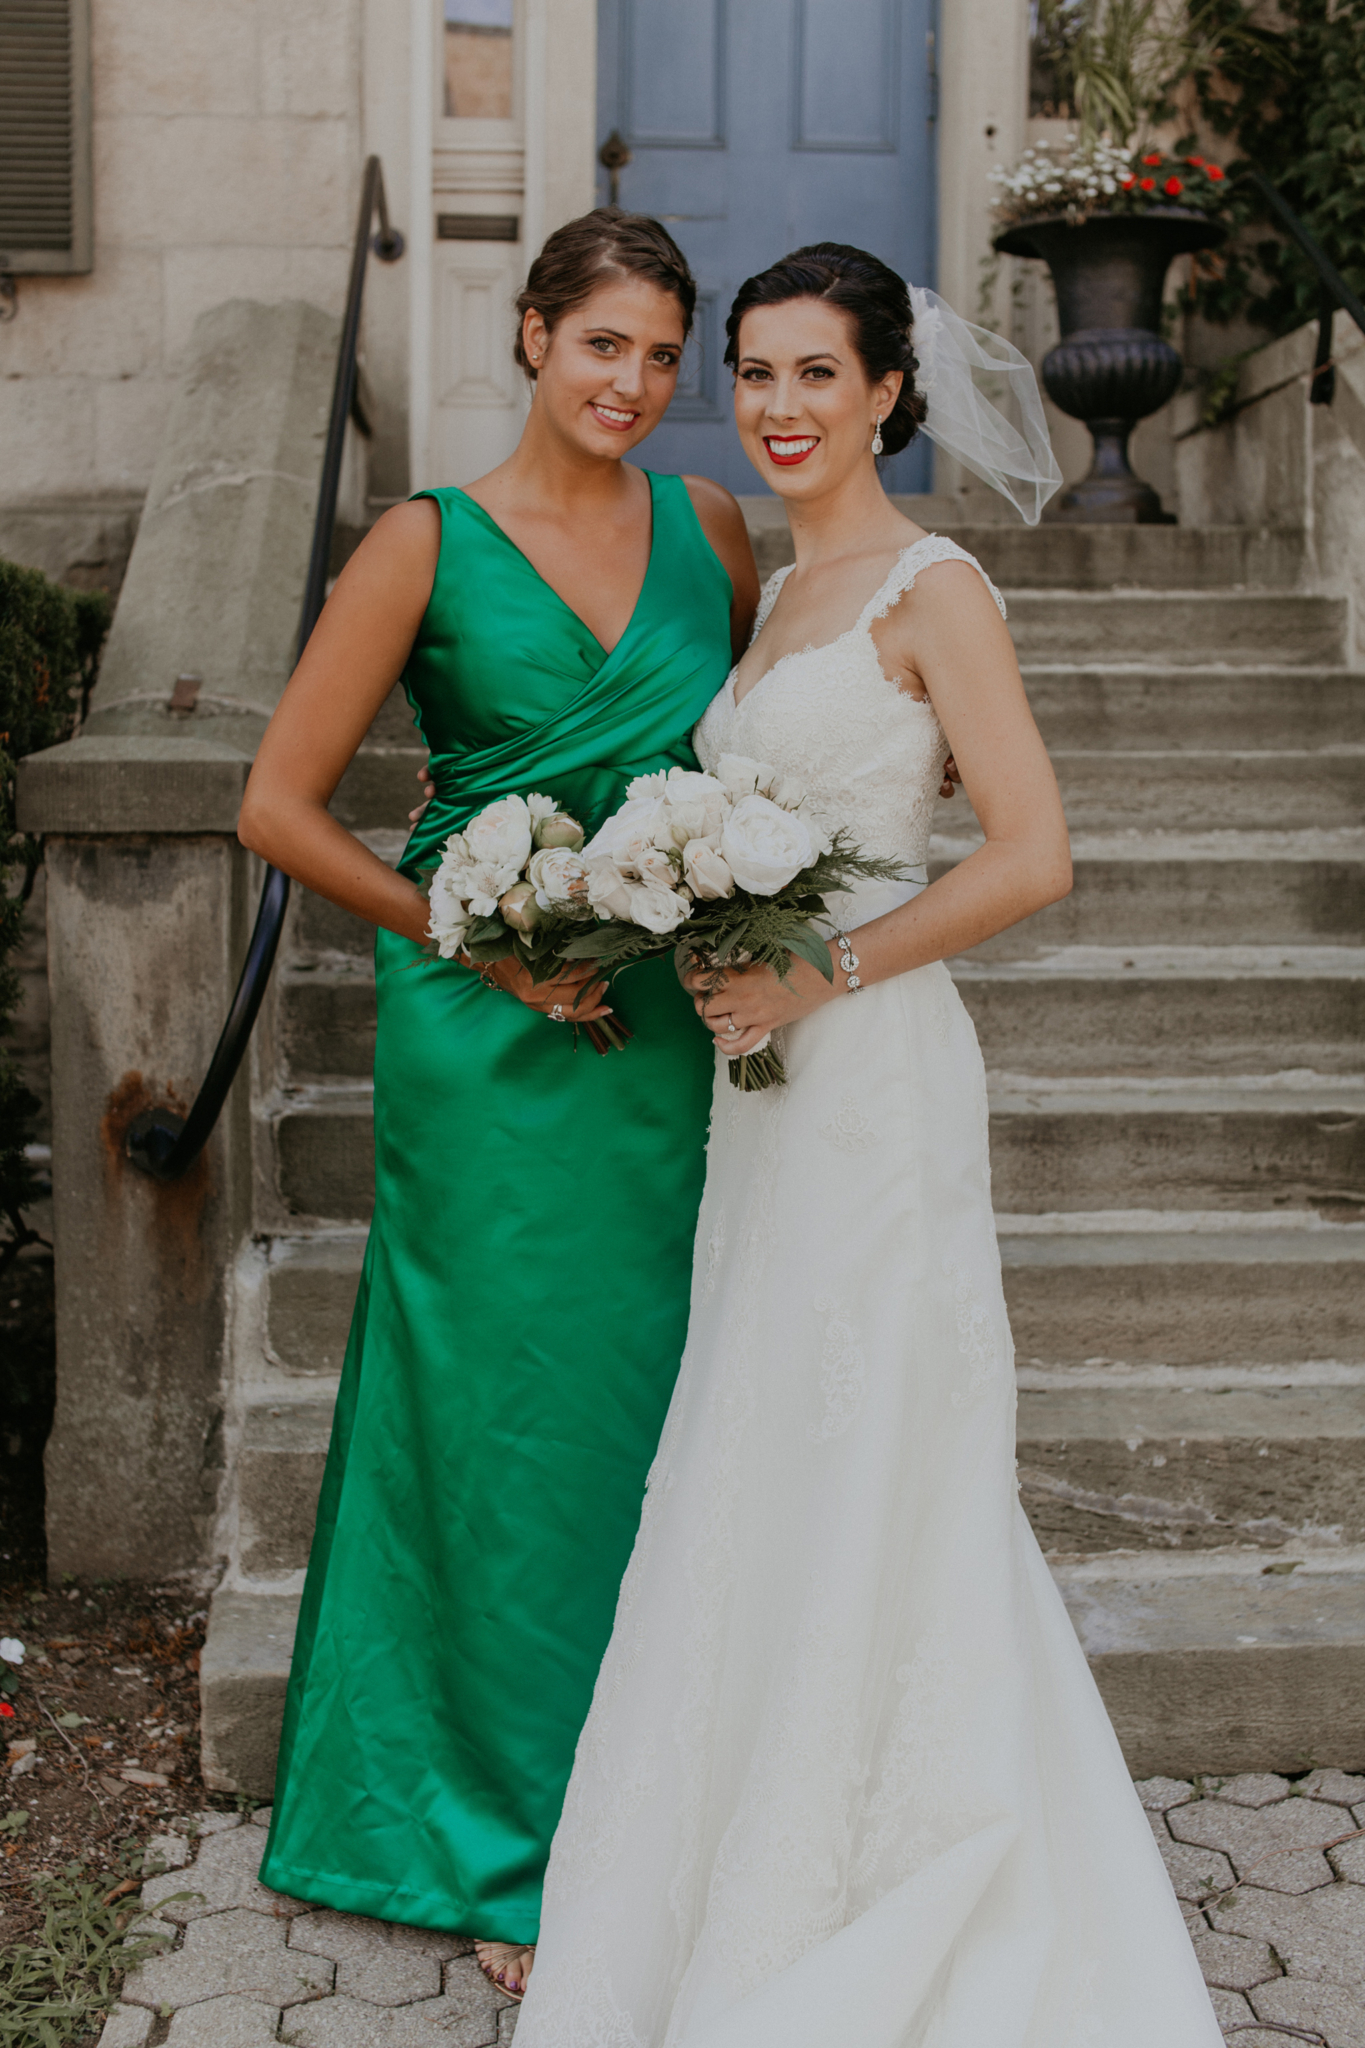 Portrait of bride with bridesmaid in green dress